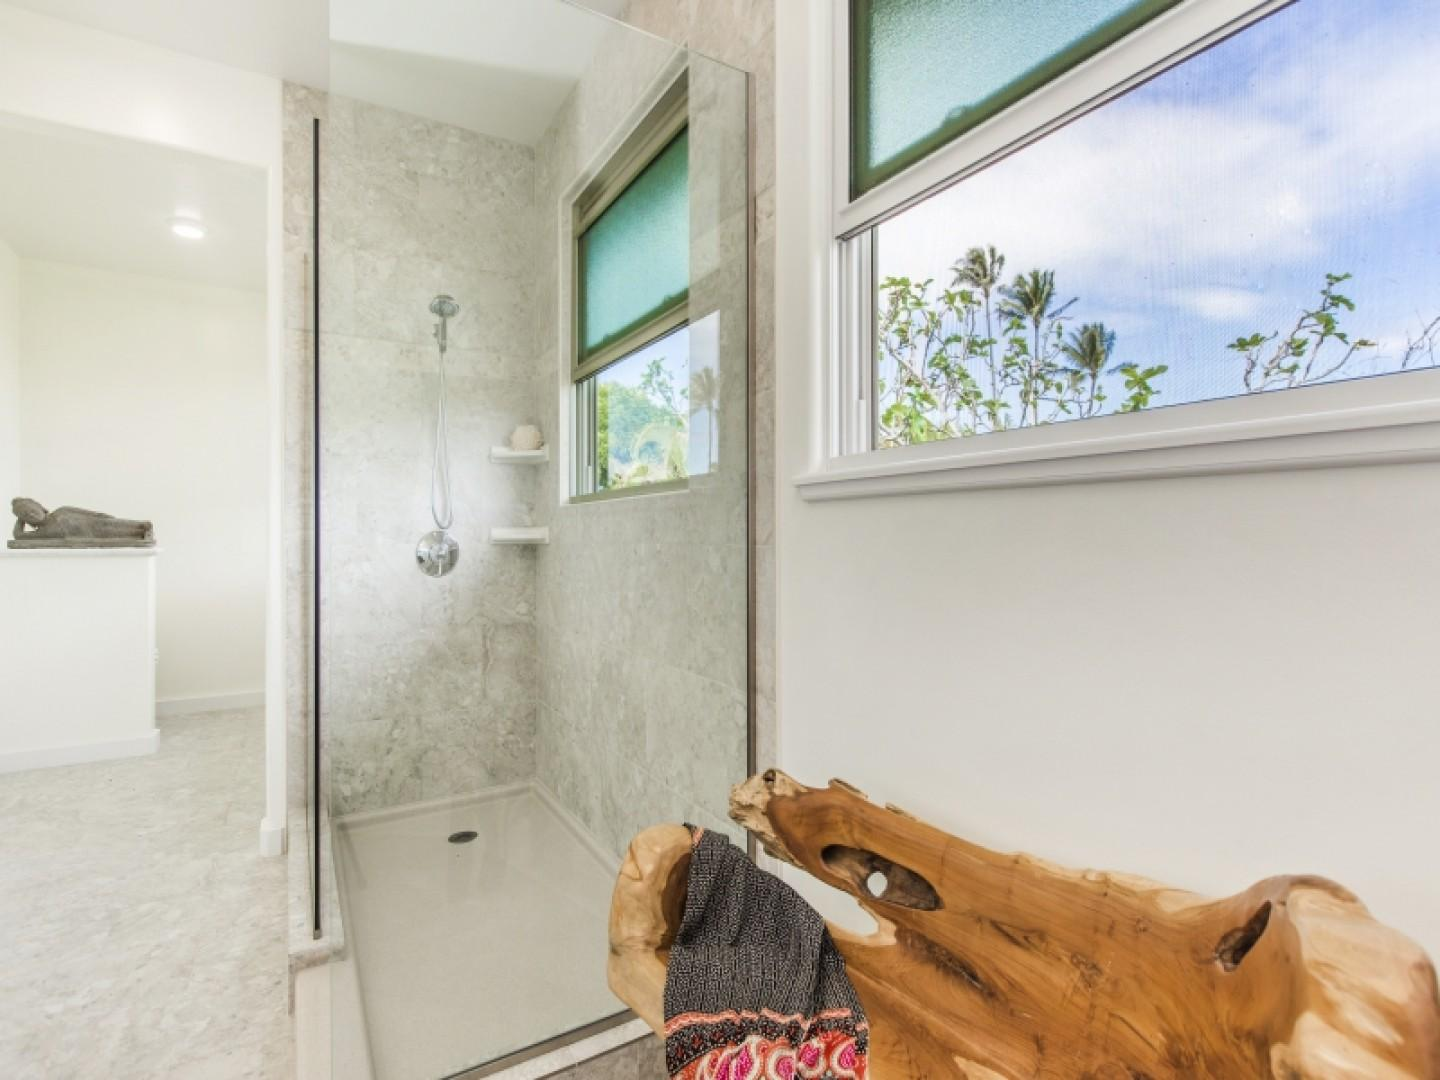 Walk-in shower with windows to take in the outdoor views.